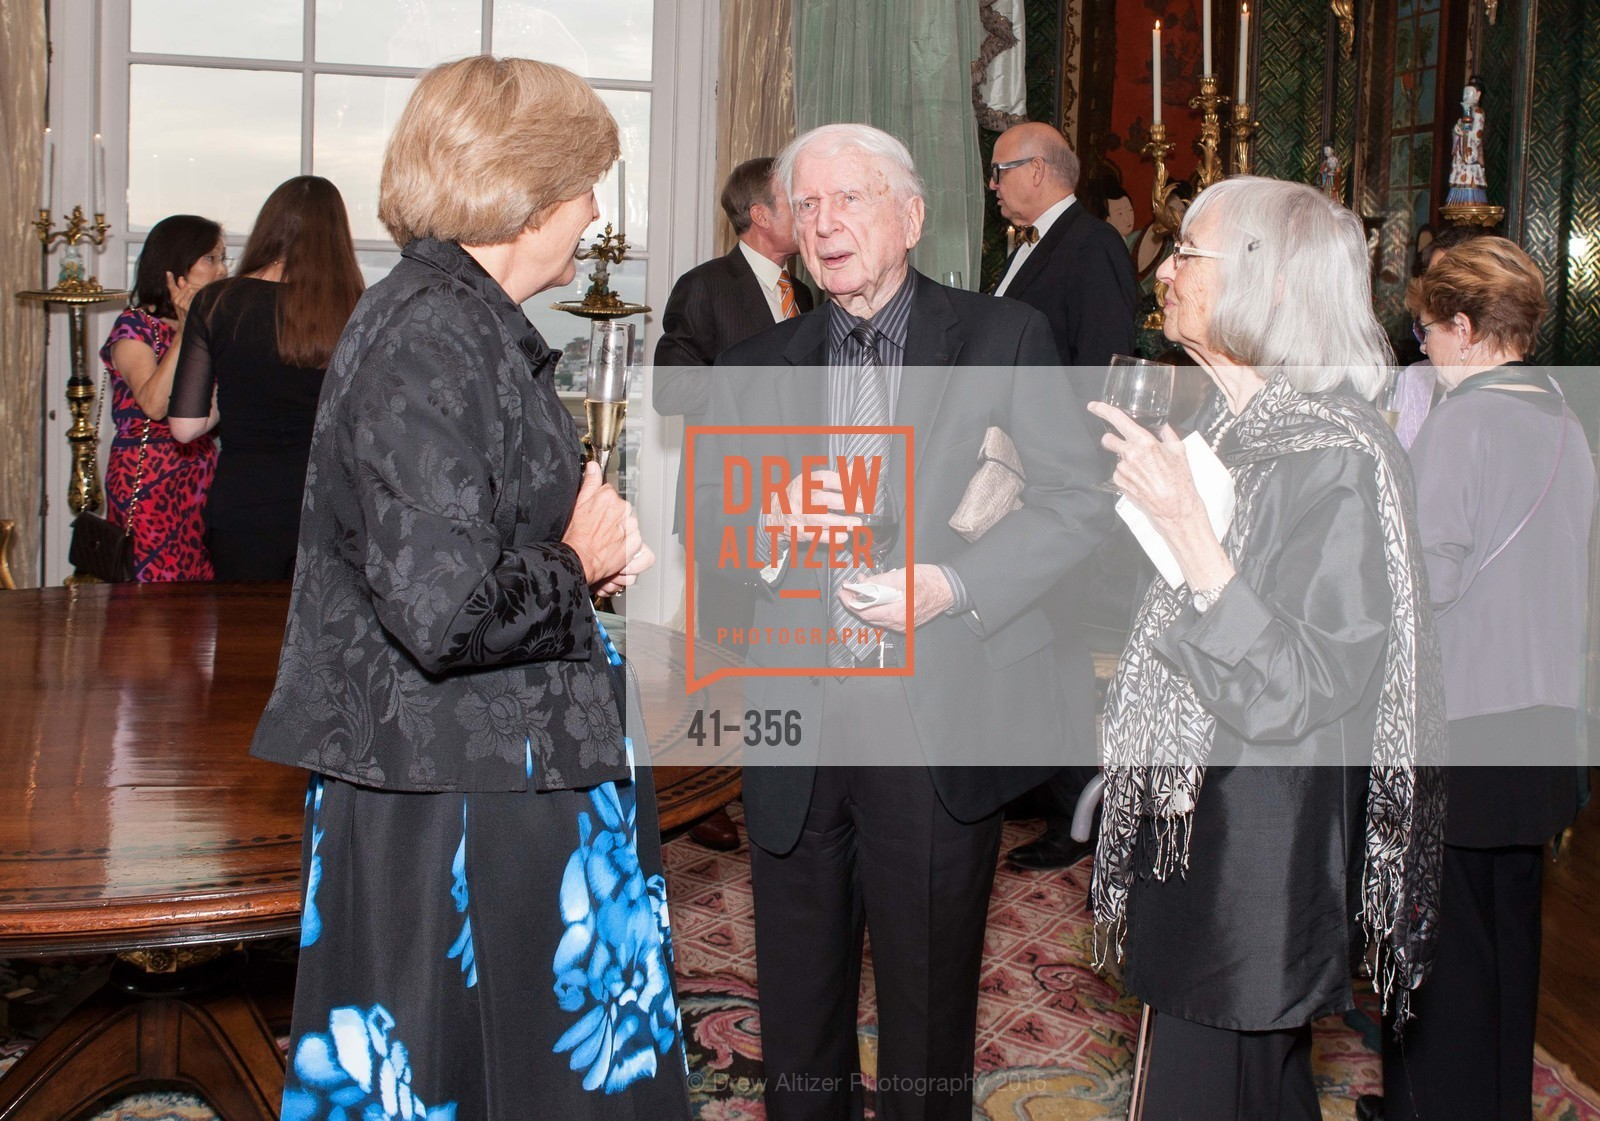 Carolyn Spitz, Stewart Canin, Virginia Canin, Getty Hosts the New Century Chamber Orchestra, Private Residence, October 8th, 2015,Drew Altizer, Drew Altizer Photography, full-service event agency, private events, San Francisco photographer, photographer California